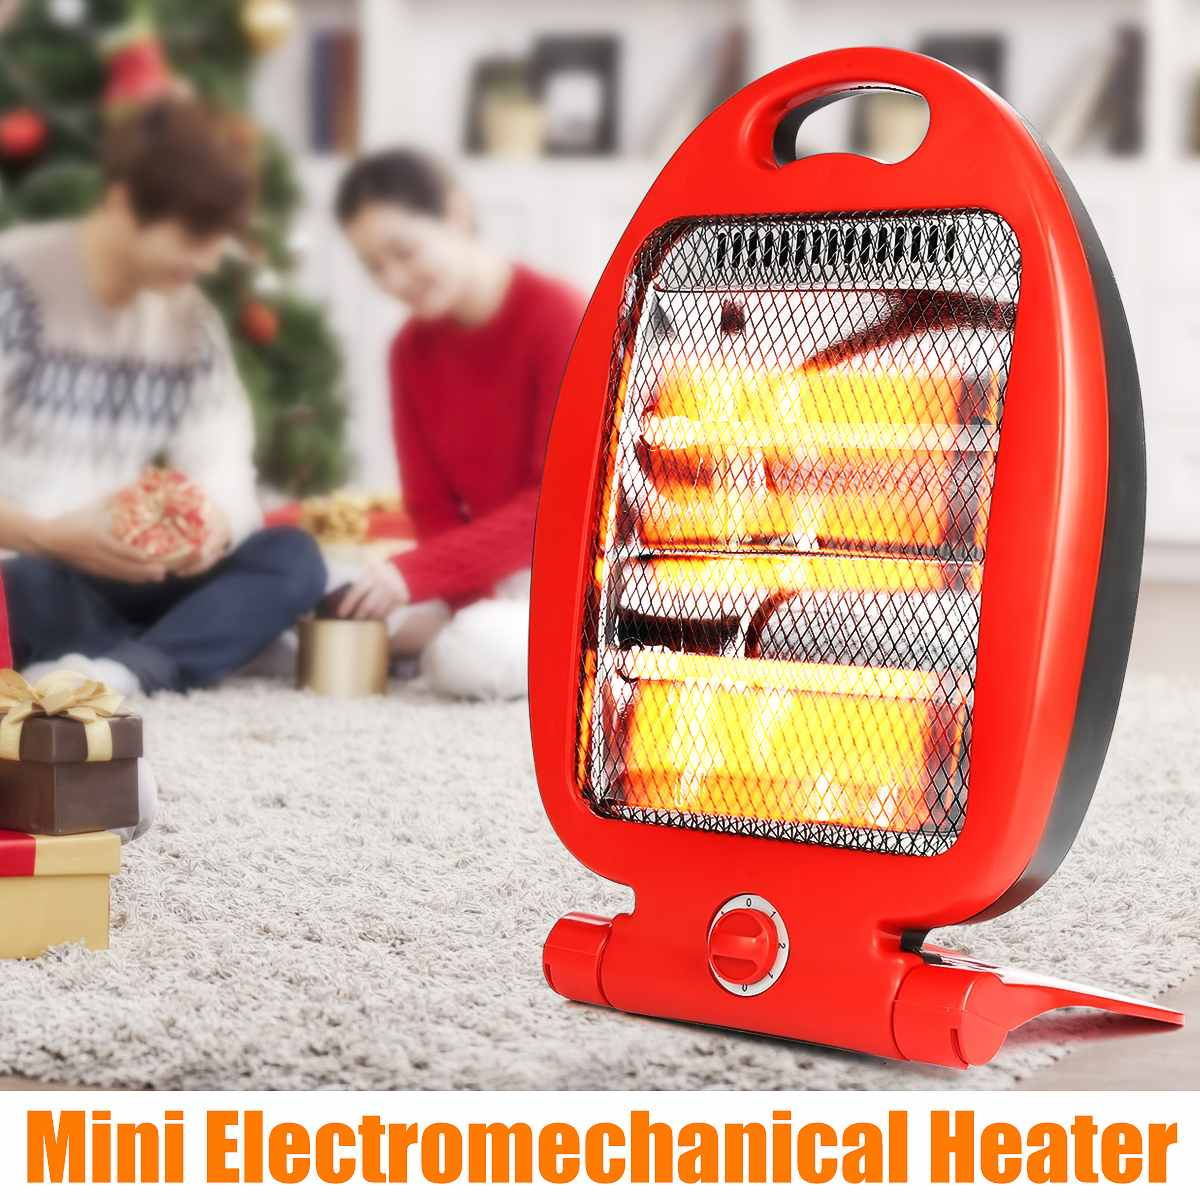 220V 800W Portable Electric Heaters Adjustable Mini Microelectronic Winter Warm Heater Mini Electromechanical Heater For Home